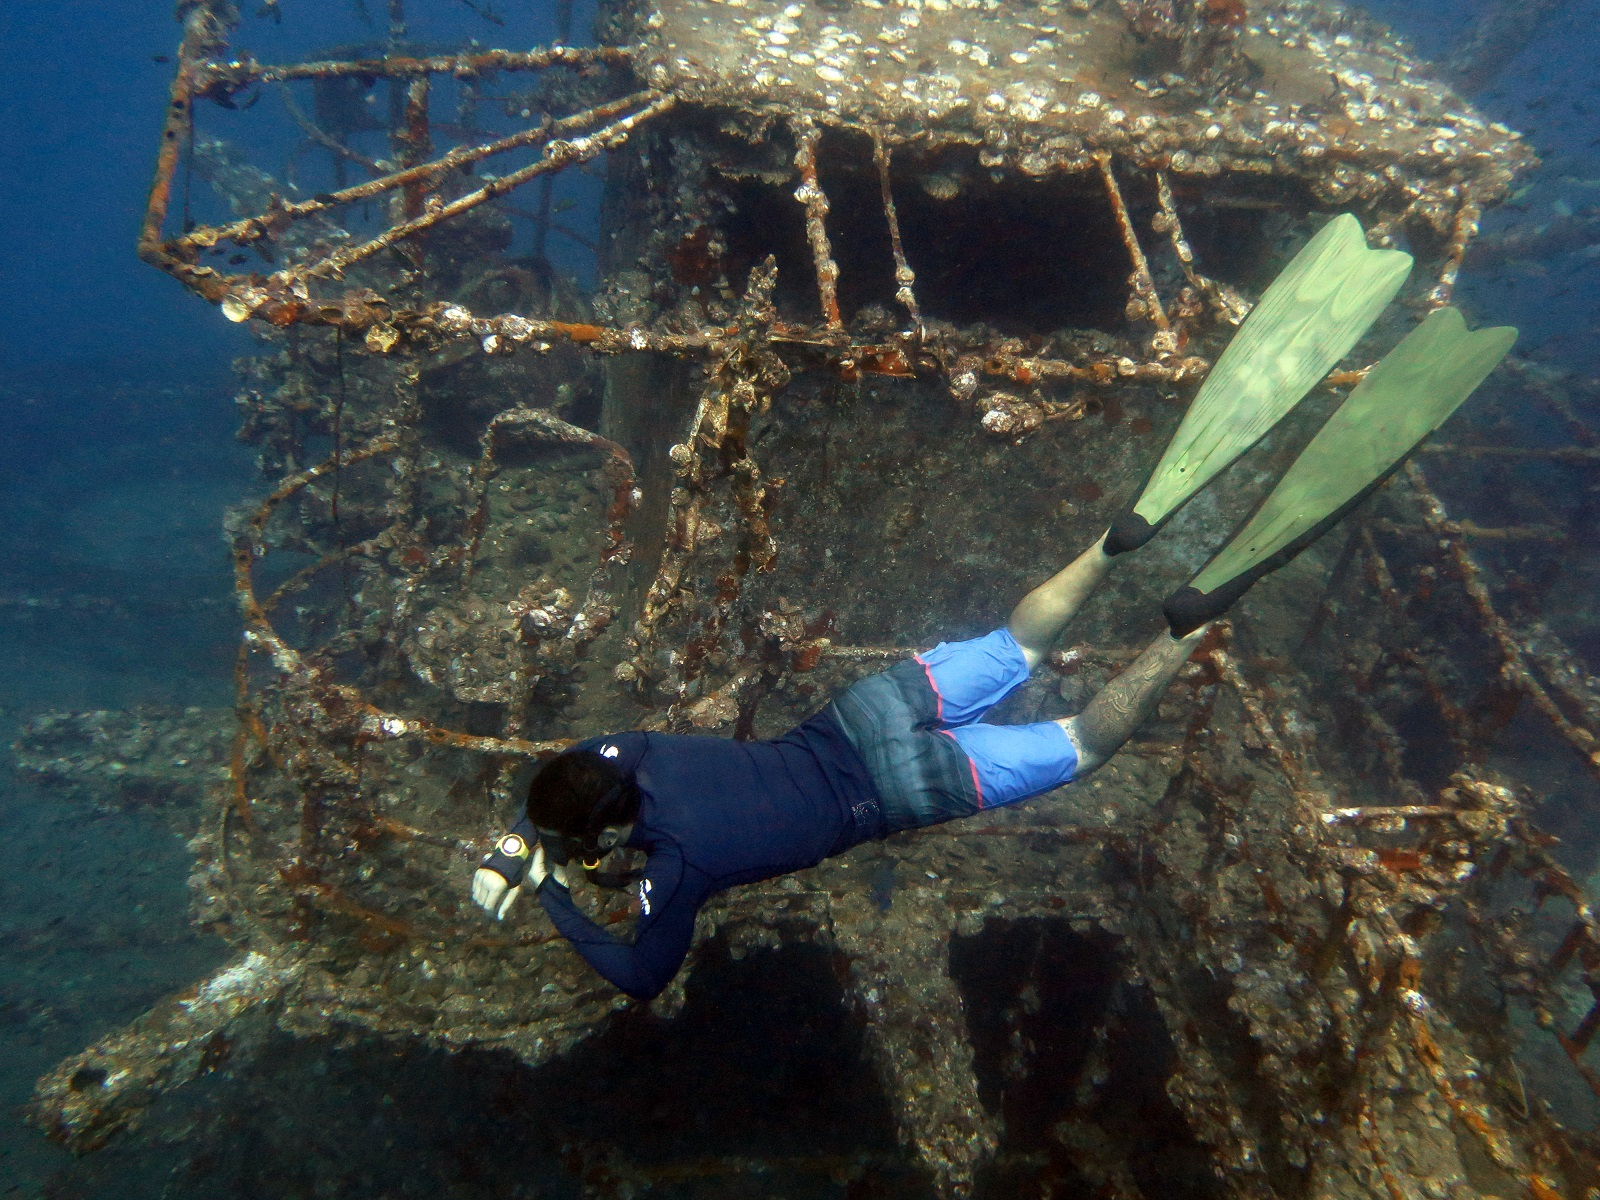 freediving-the-wreck.jpg